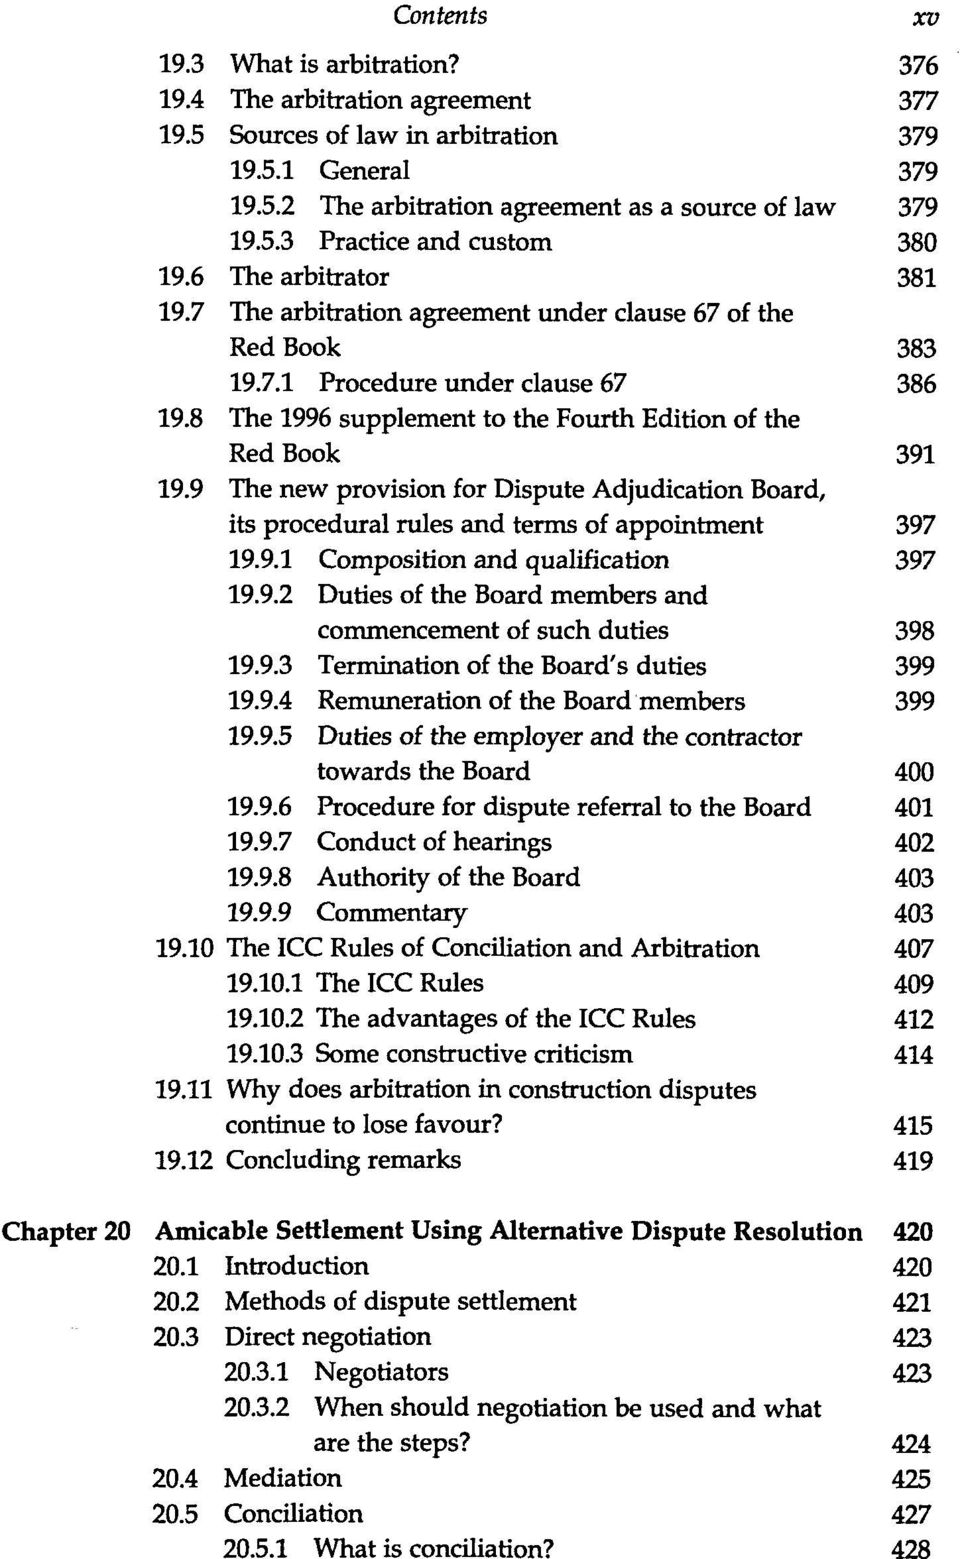 9 The new provision for Dispute Adjudication Board, its procédural rules and ternis of appointaient 397 19.9.1 Composition and qualification 397 19.9.2 Duties of the Board members and commencement of such duties 398 19.